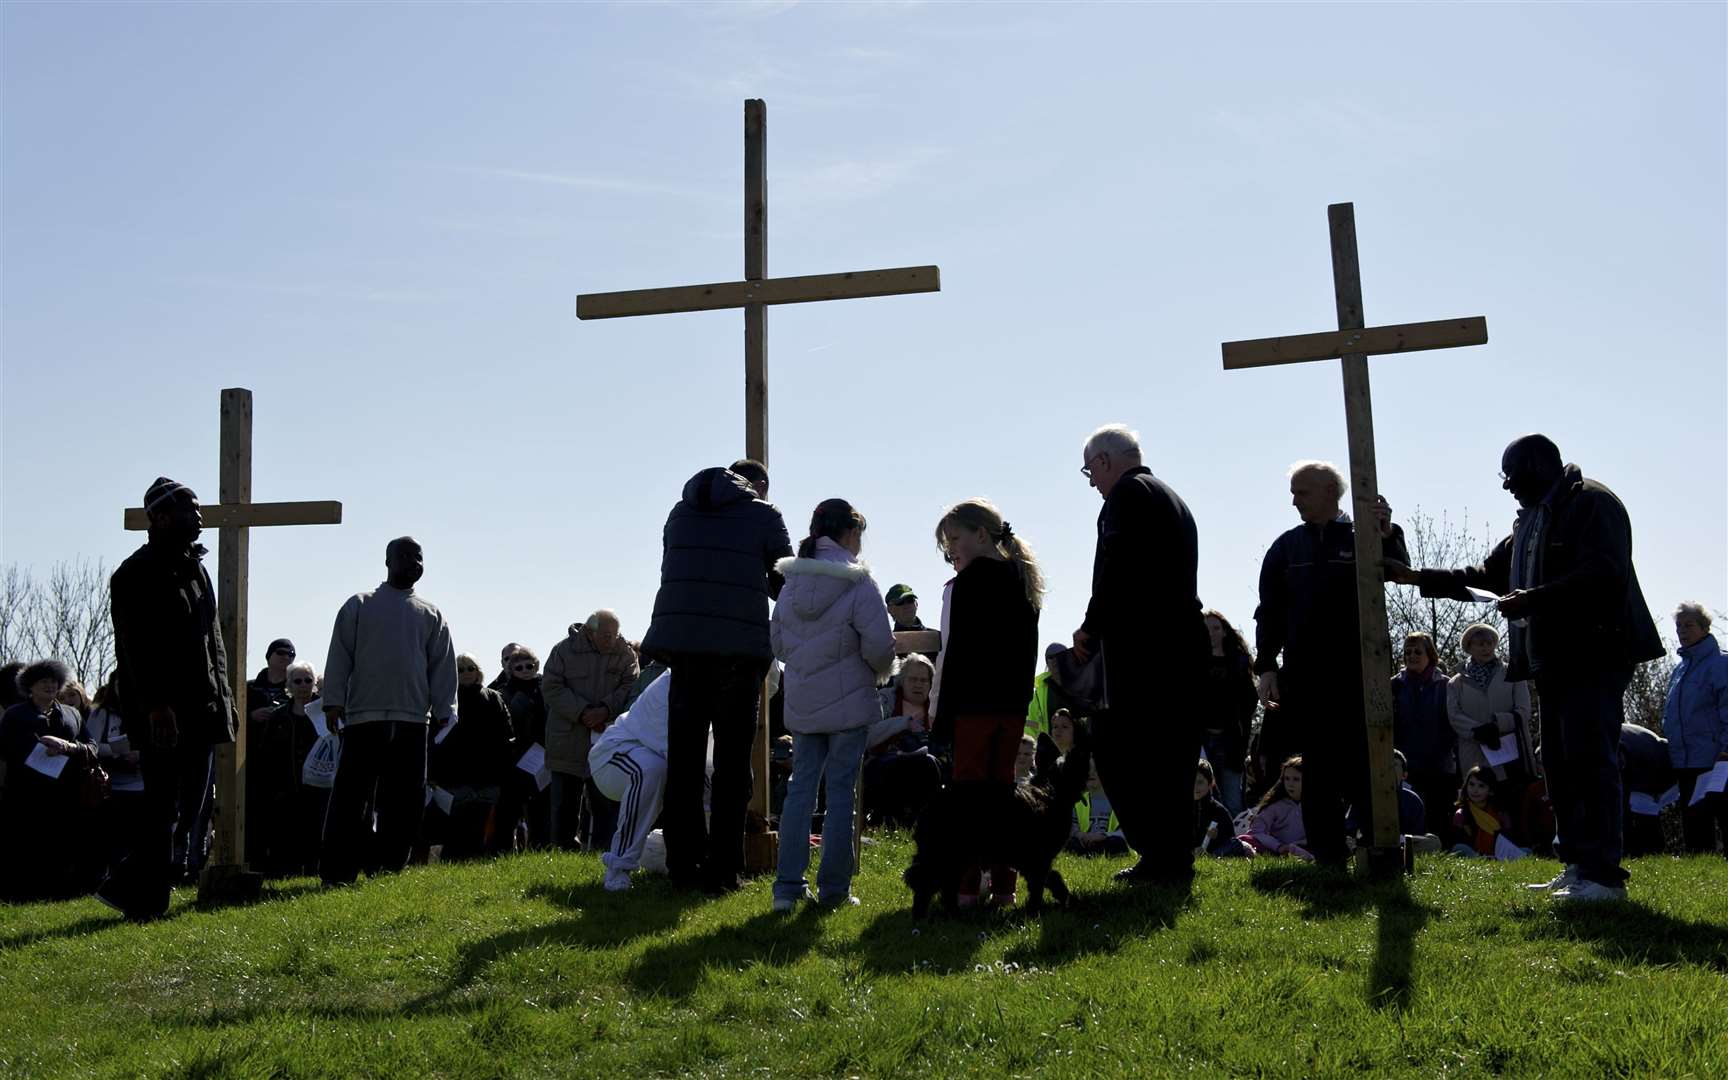 The crosses are raised on Bunny Bank at the Annual Churches Together in Sheppey Procession of Witness in 2012